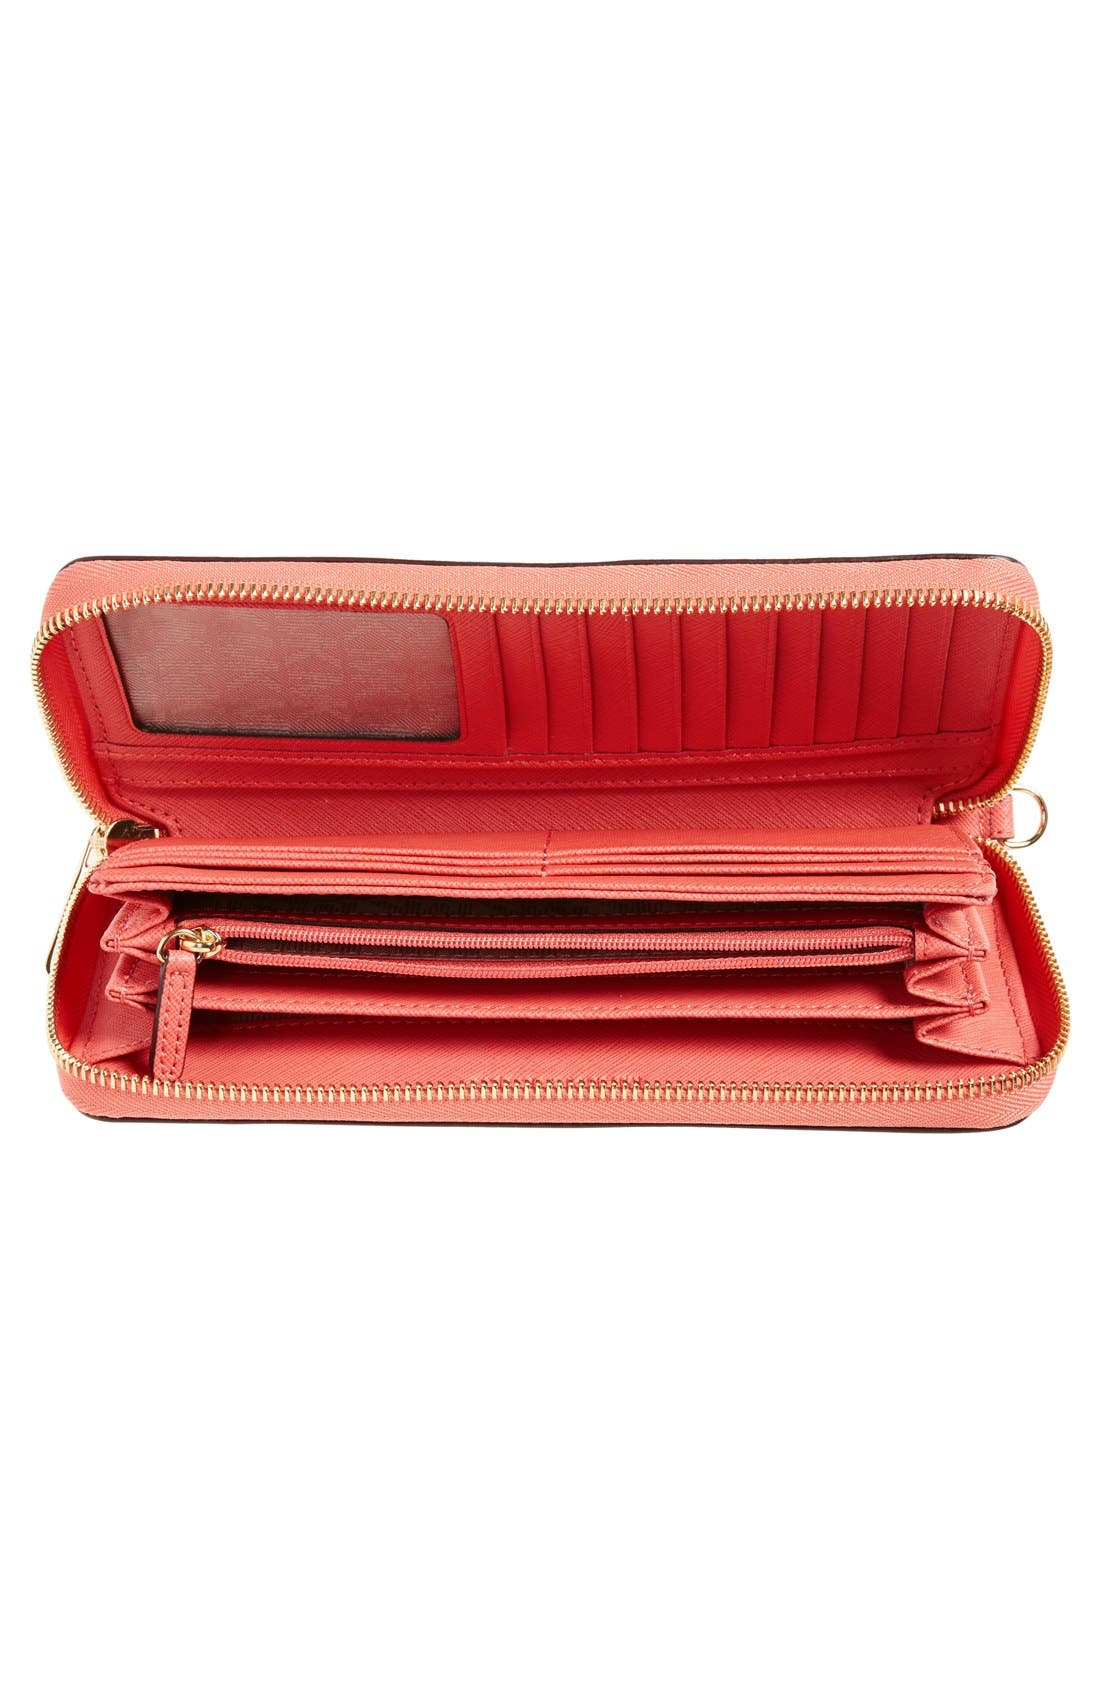 'Jet Set' Leather Travel Wallet,                             Alternate thumbnail 21, color,